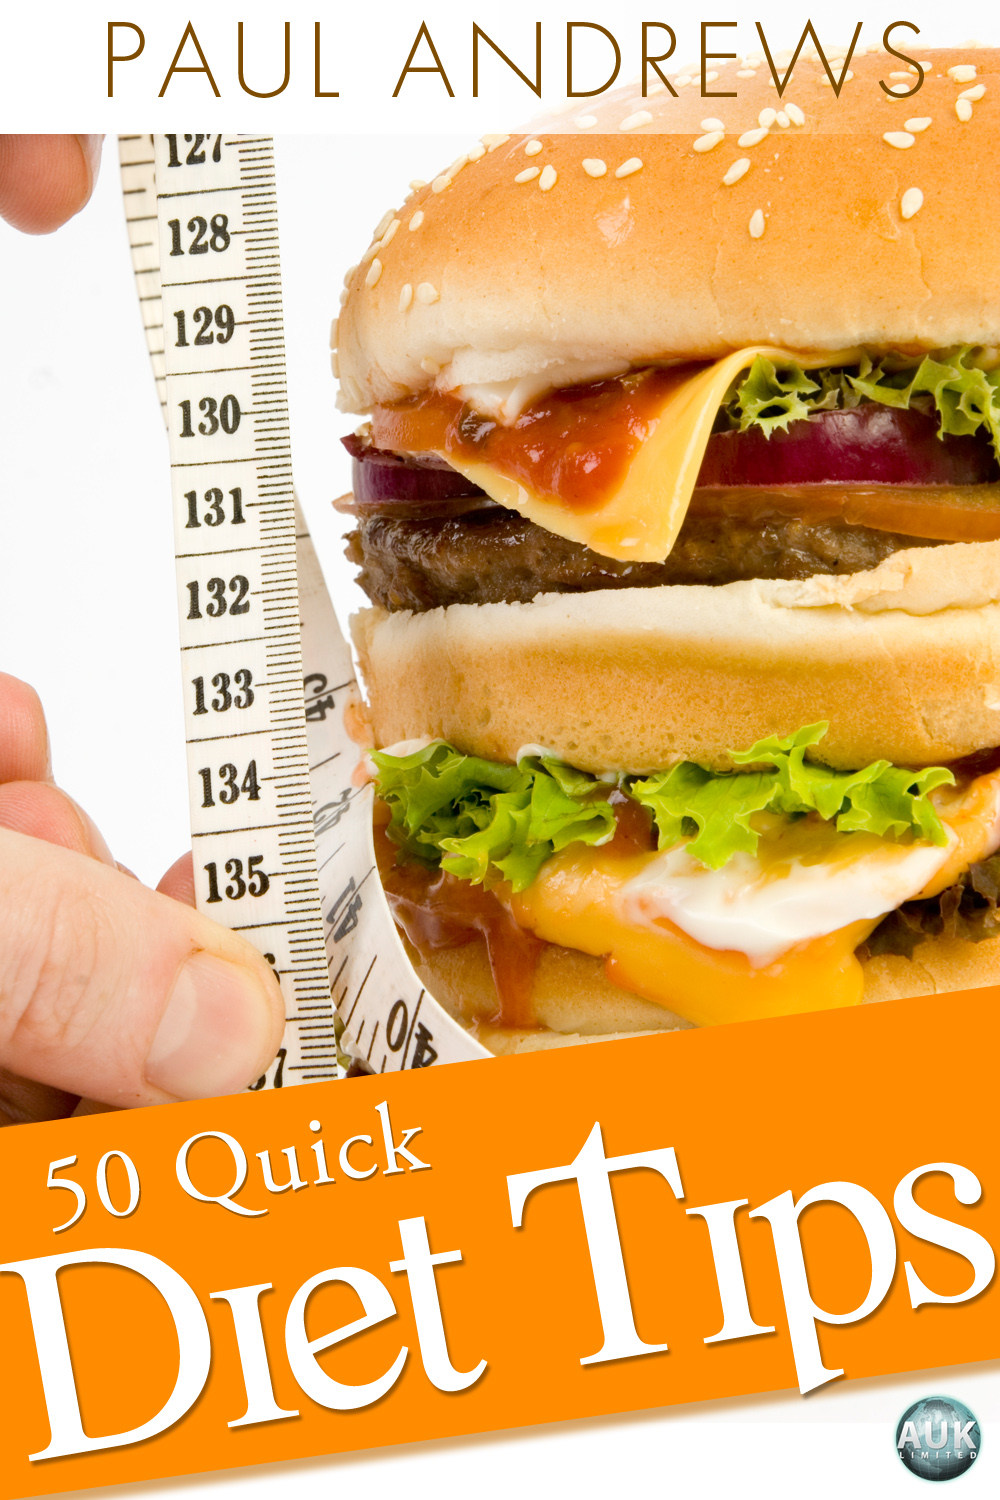 50 Quick Diet Tips By: Paul Andrews